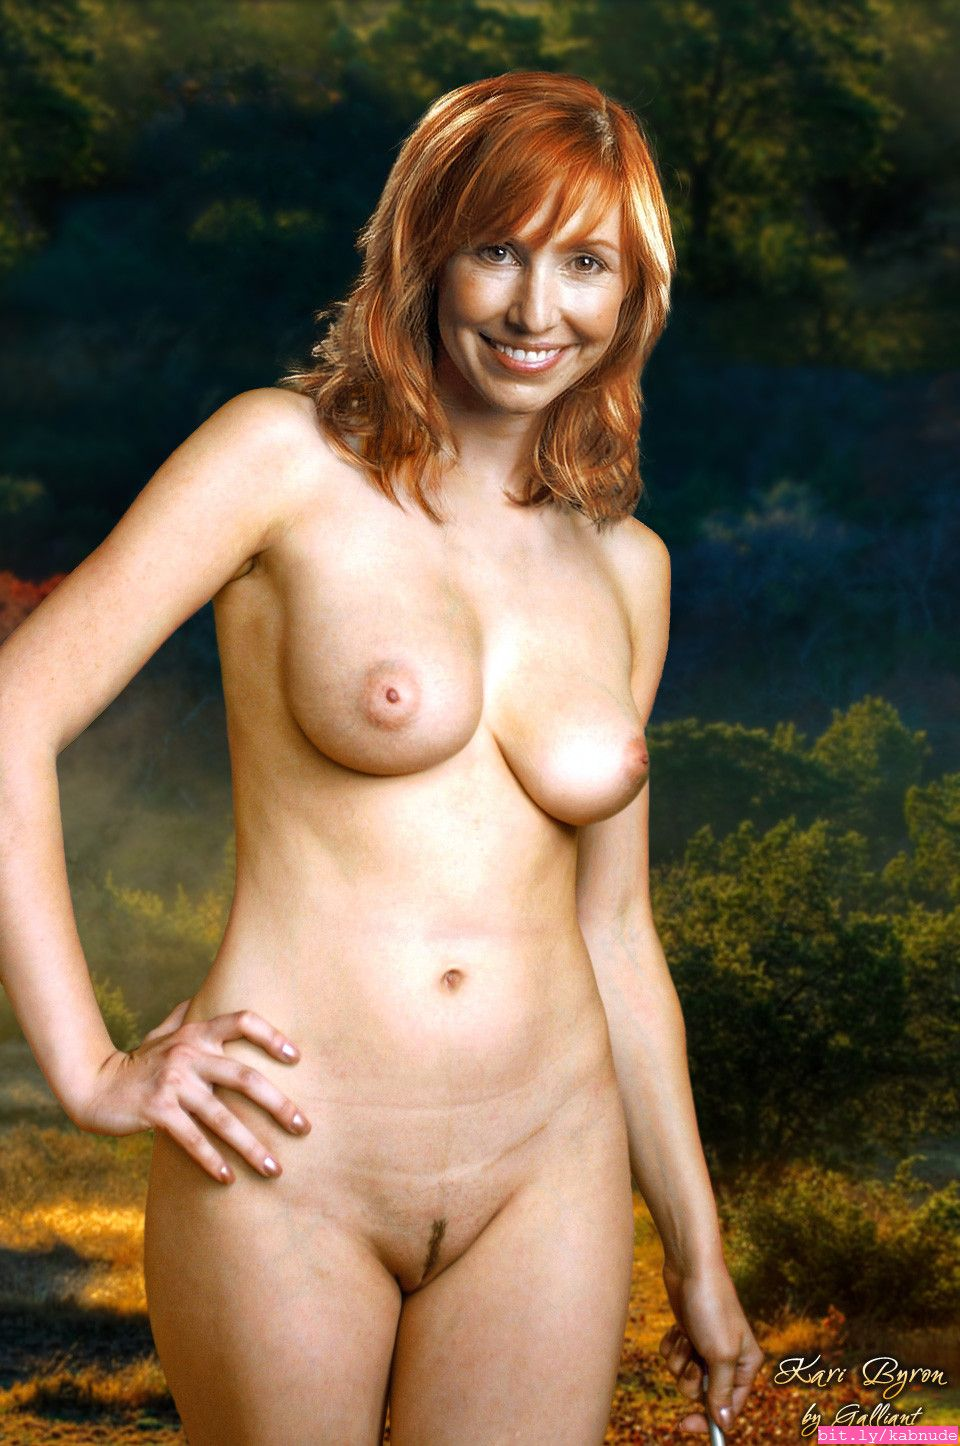 Nude movies online free